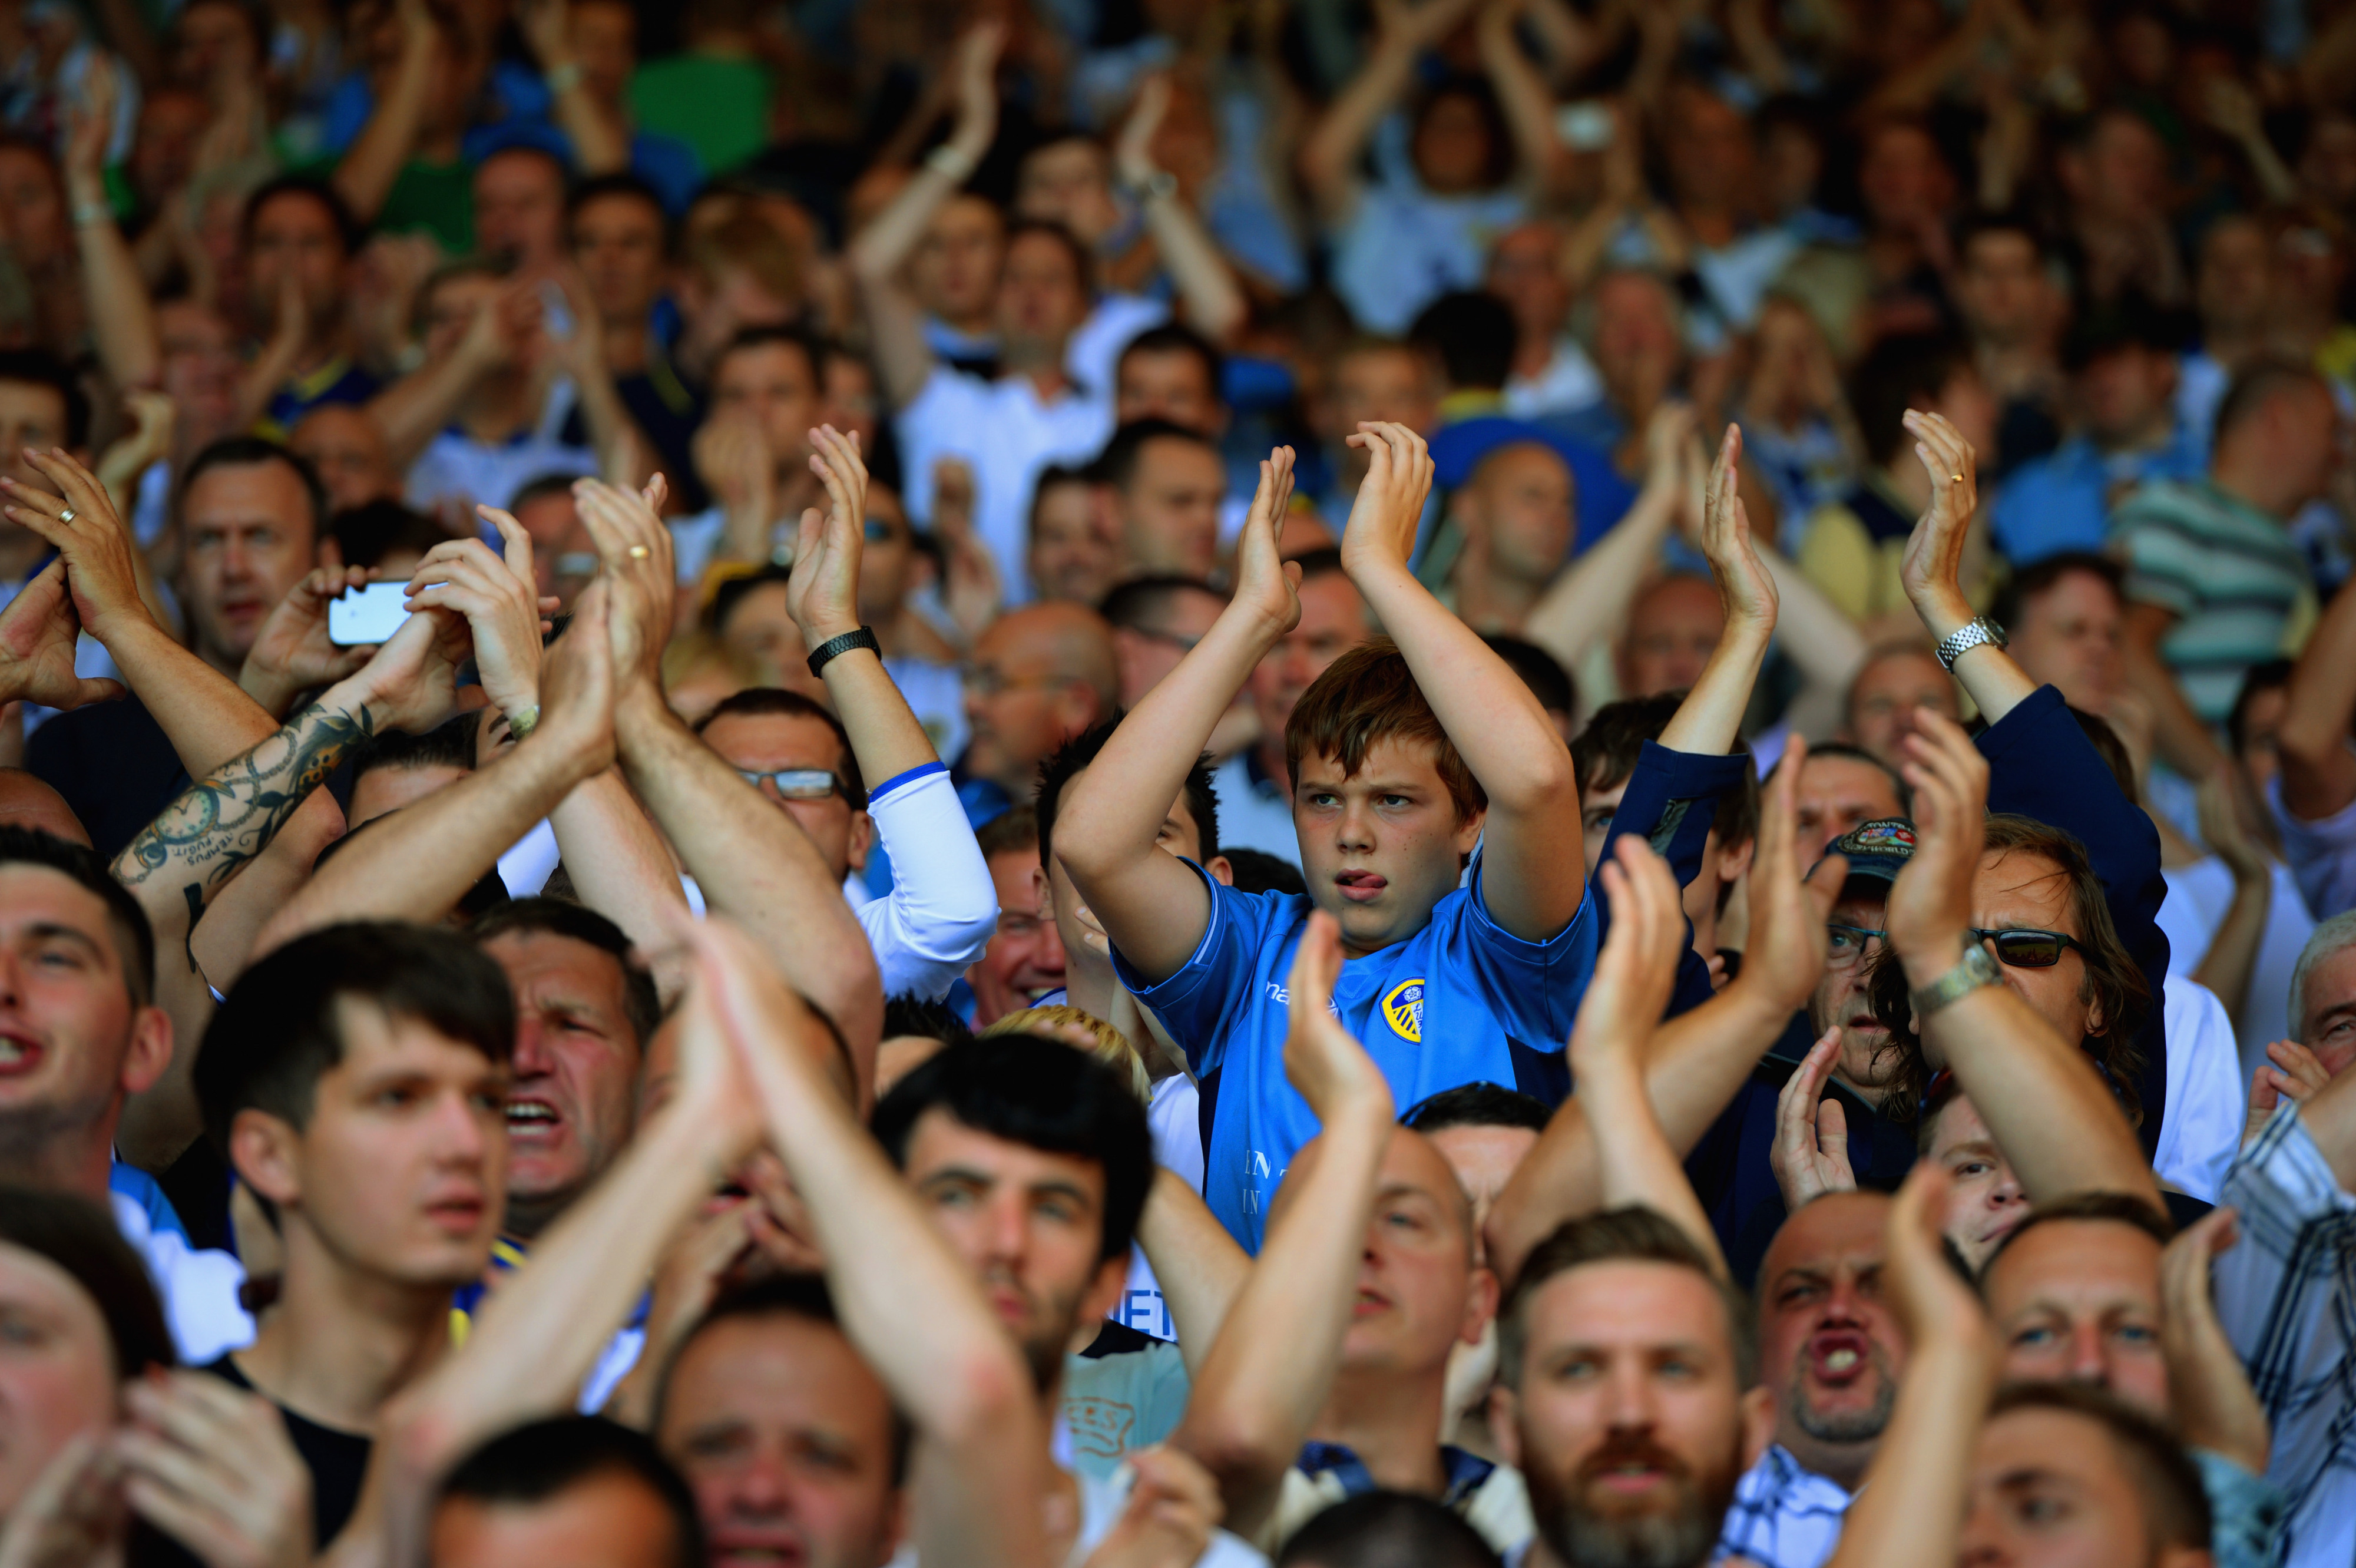 Applause at Elland Road - An all to rare thing in recent times.